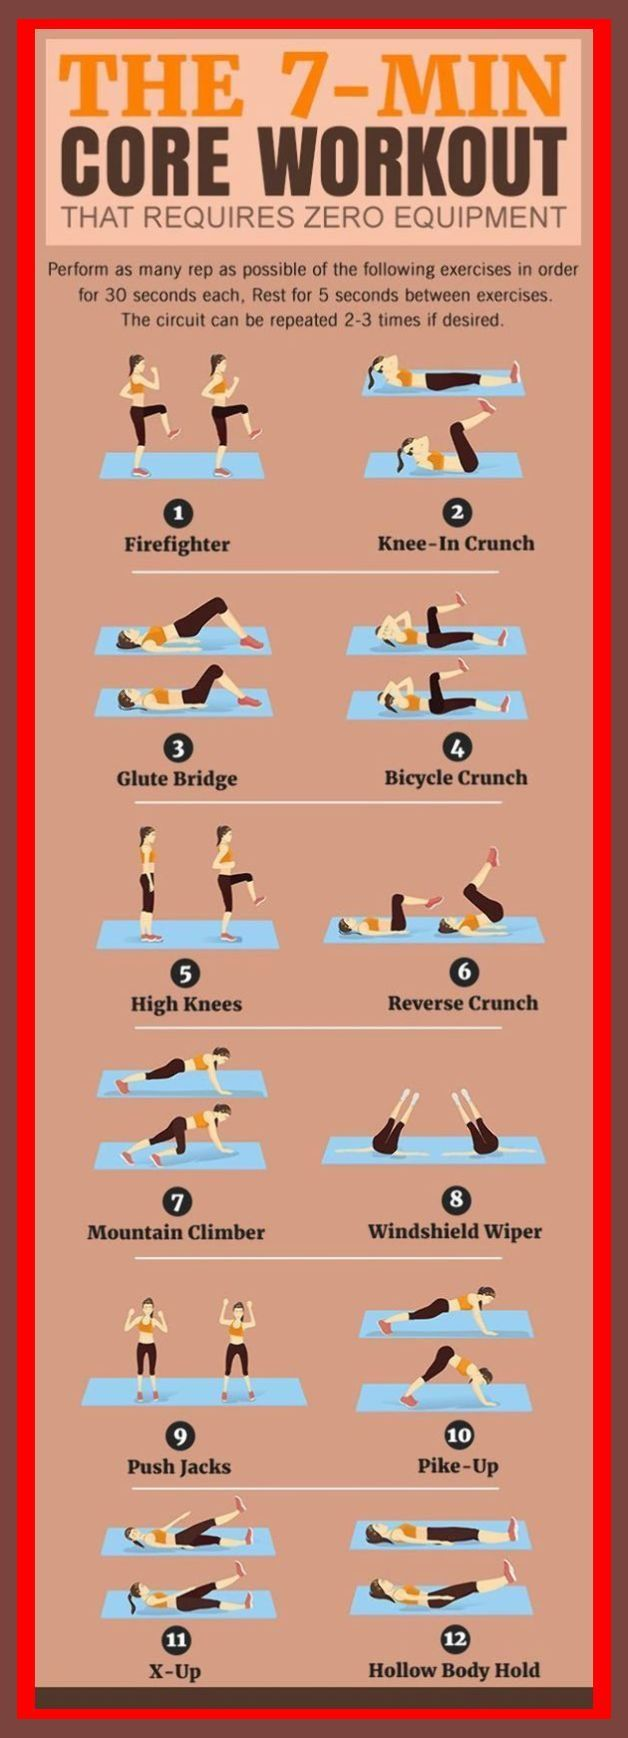 Golf Mo Golf Workout Program Lower Back Exercises For Golf Golf Exercises Flexibilit Ab Workout At Home Exercise Core Workout